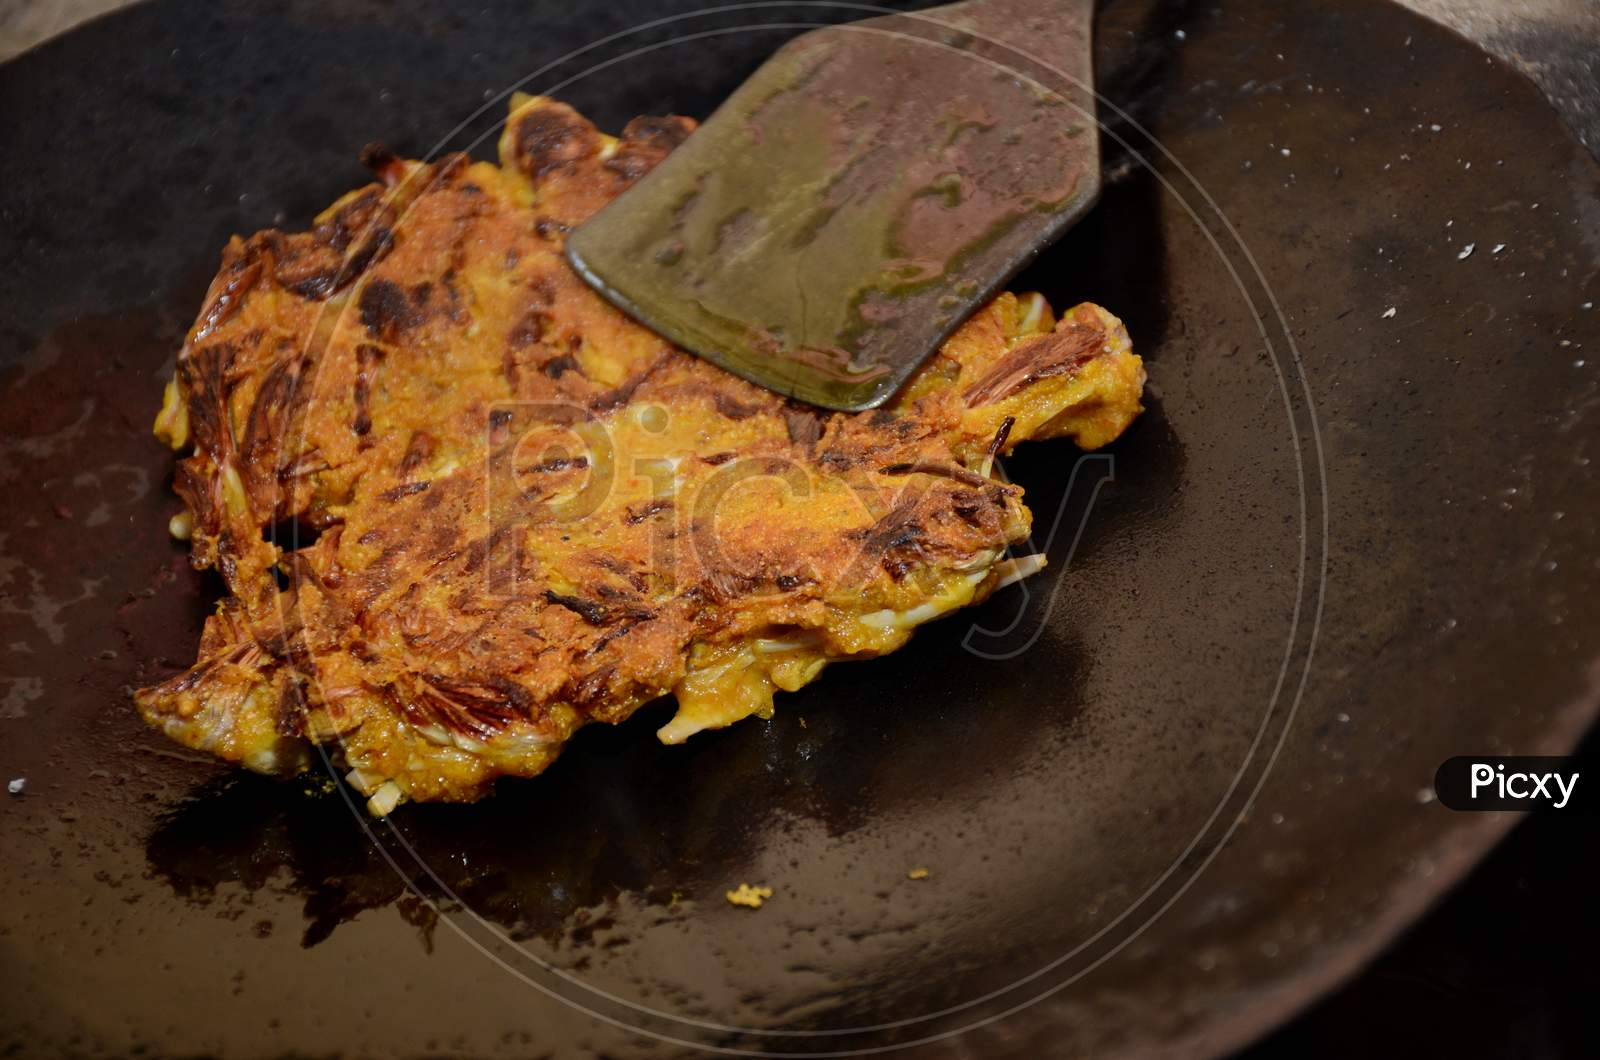 The Yellow Tree Flower Fried Made Veg With Metal Dark Vessel.